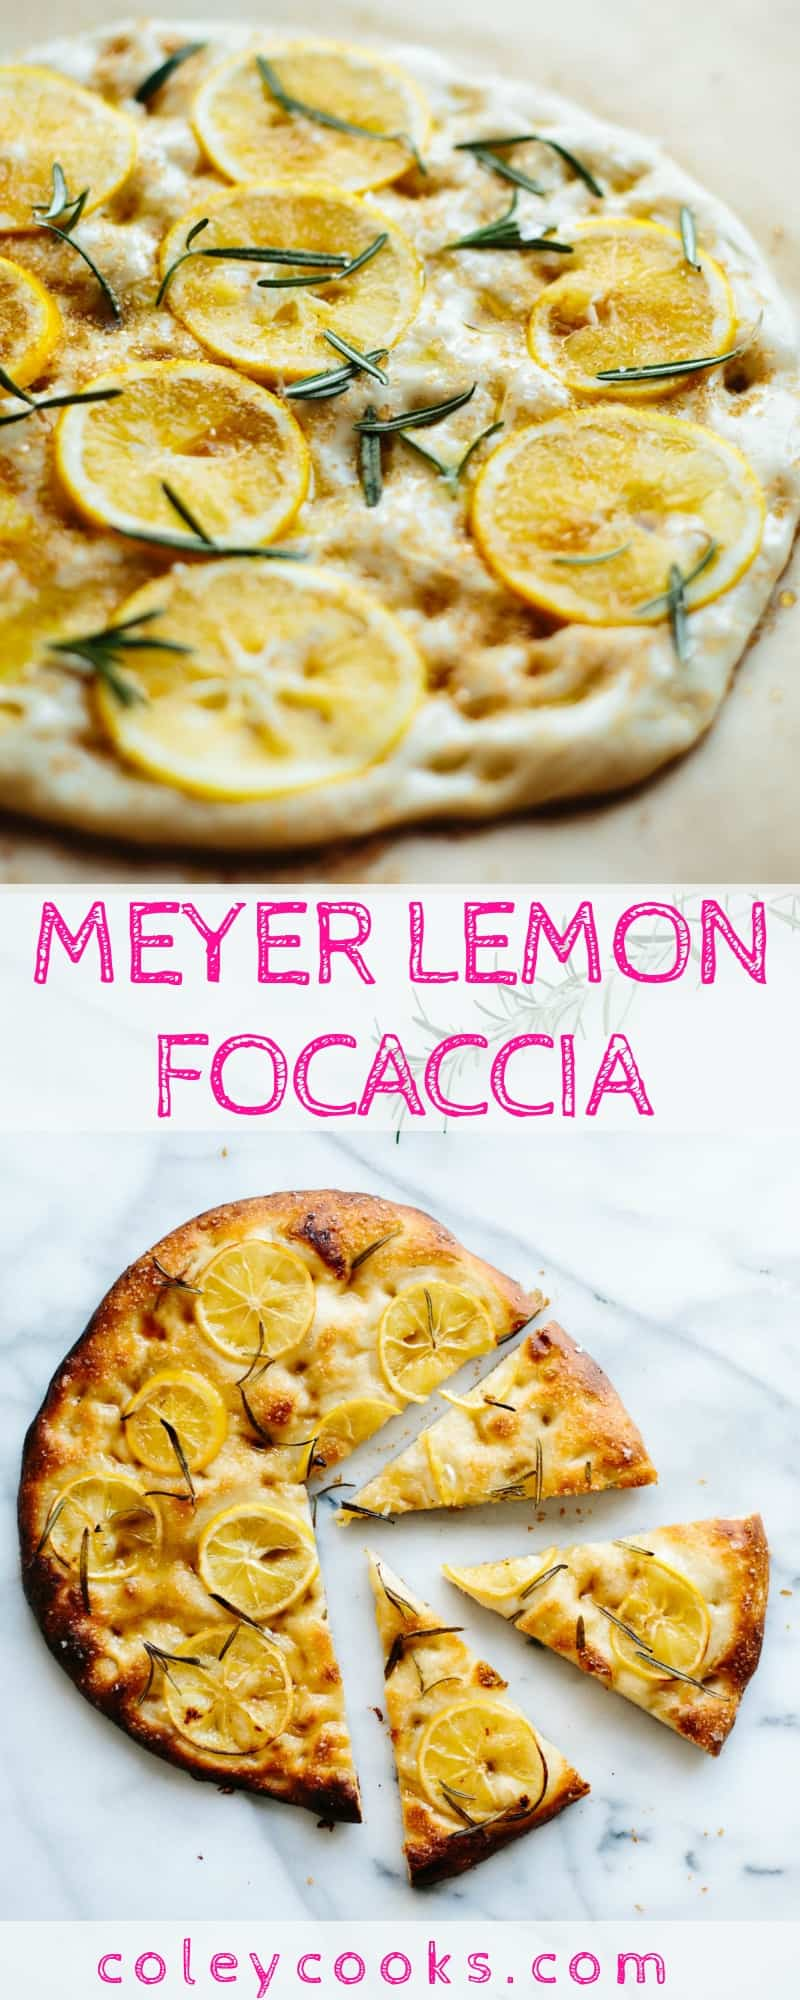 MEYER LEMON FOCACCIA | Salty, Sweet, Tangy, Pillowy Soft + Totally Addictive Focaccia Recipe! The best Italian focaccia bread recipe ever! #Italian #focaccia #bread #recipe #meyerlemon #lemon | ColeyCooks.com